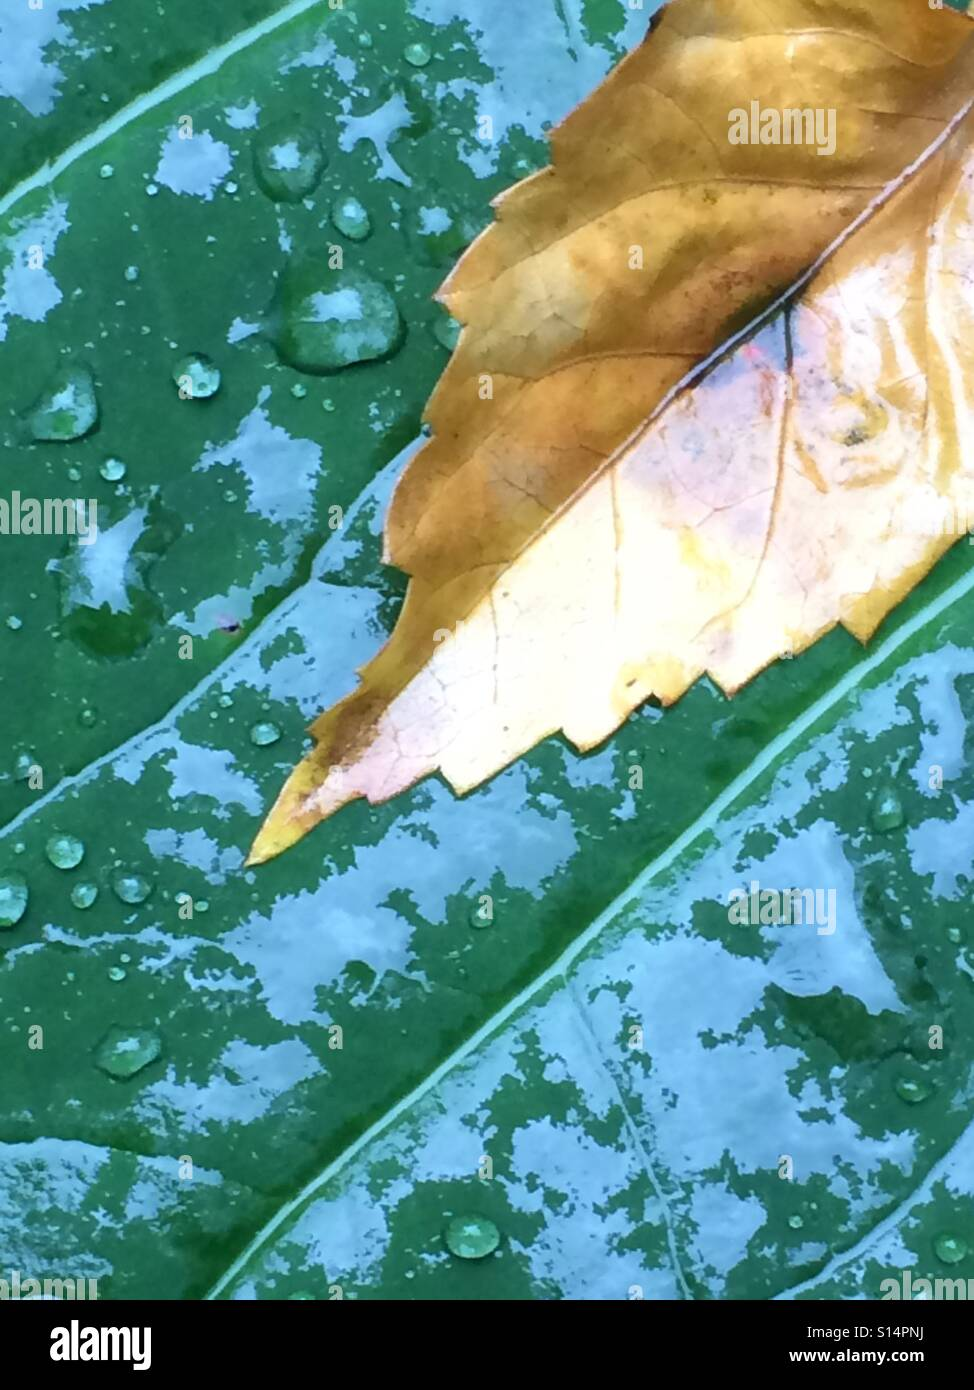 Yellowed leaf contrasting sharply against rain drenched green leaf background. - Stock Image